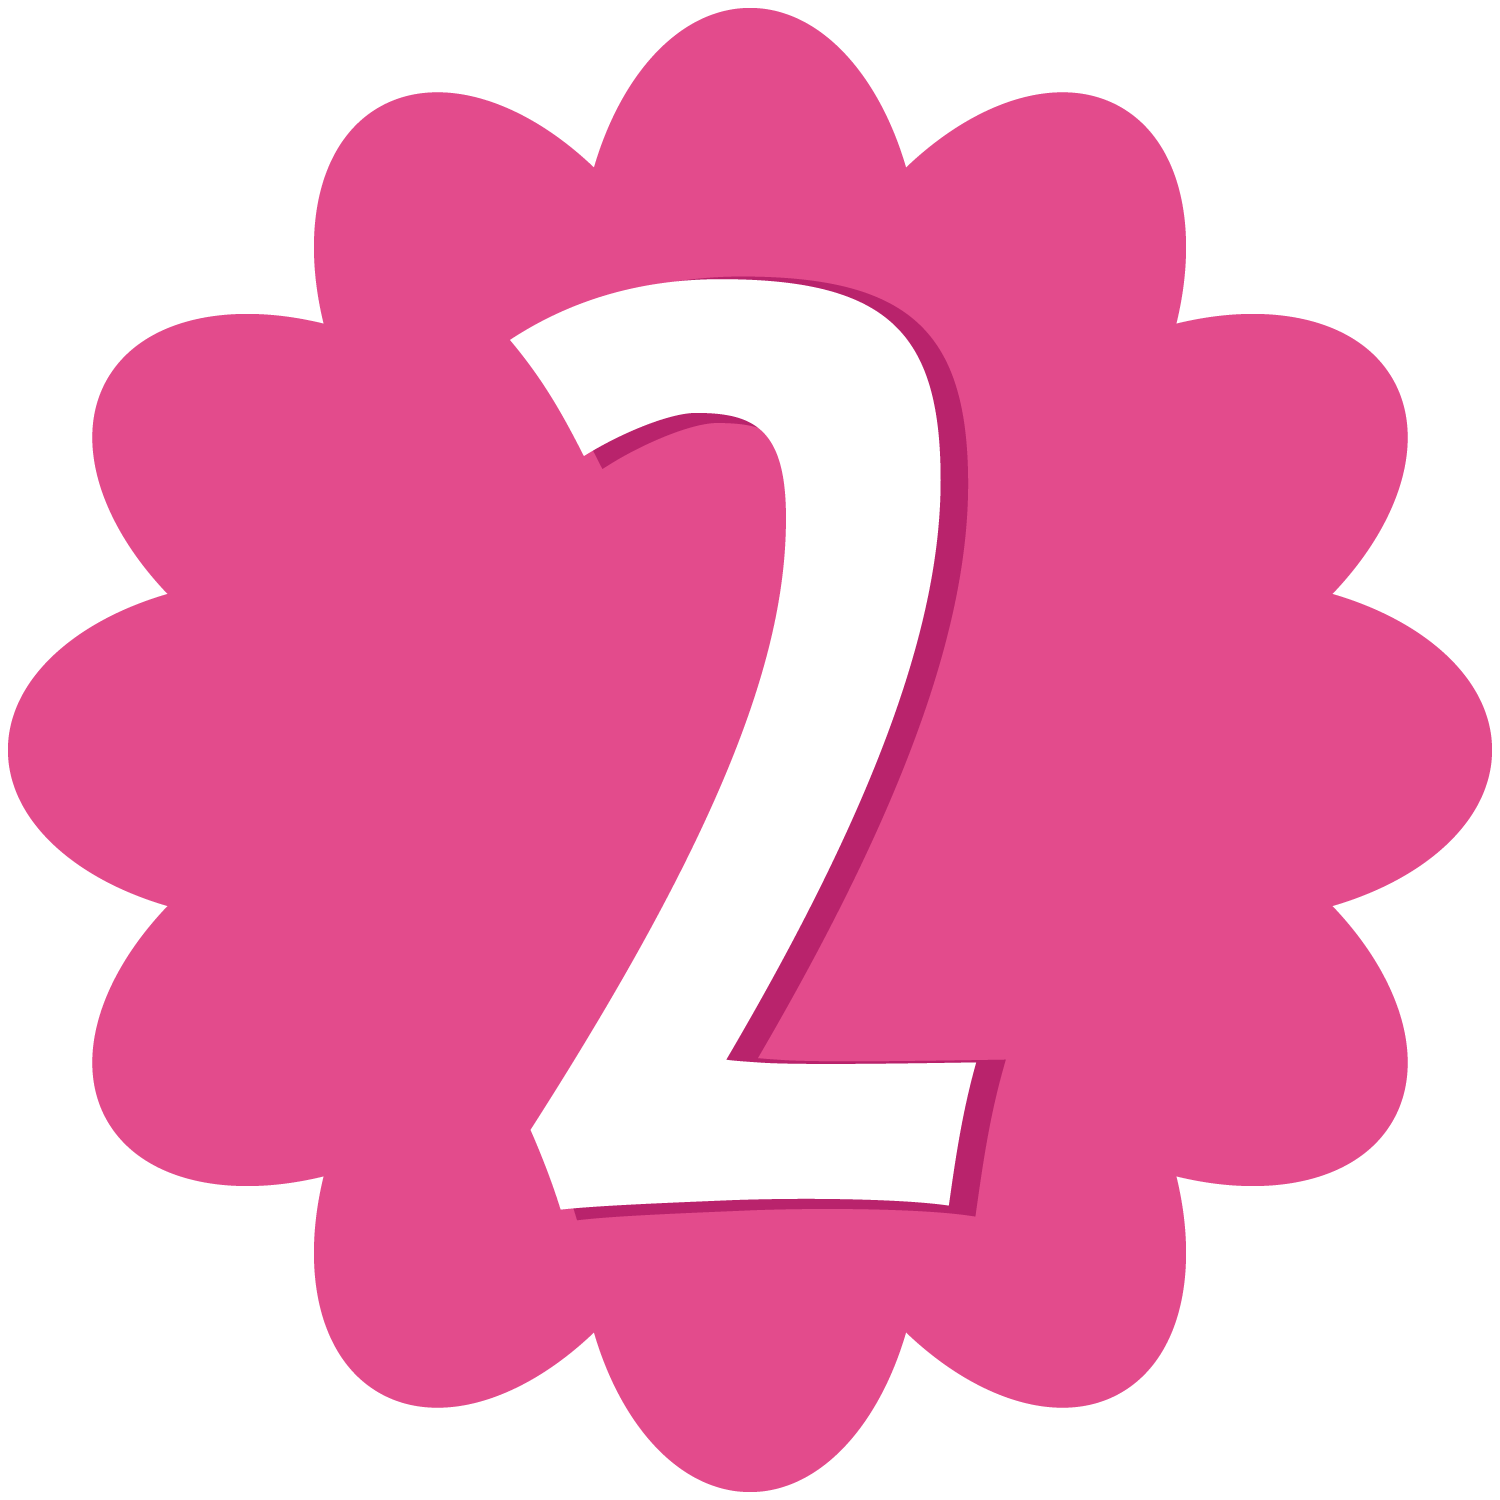 Number 1 clipart pink. With princess crown collection